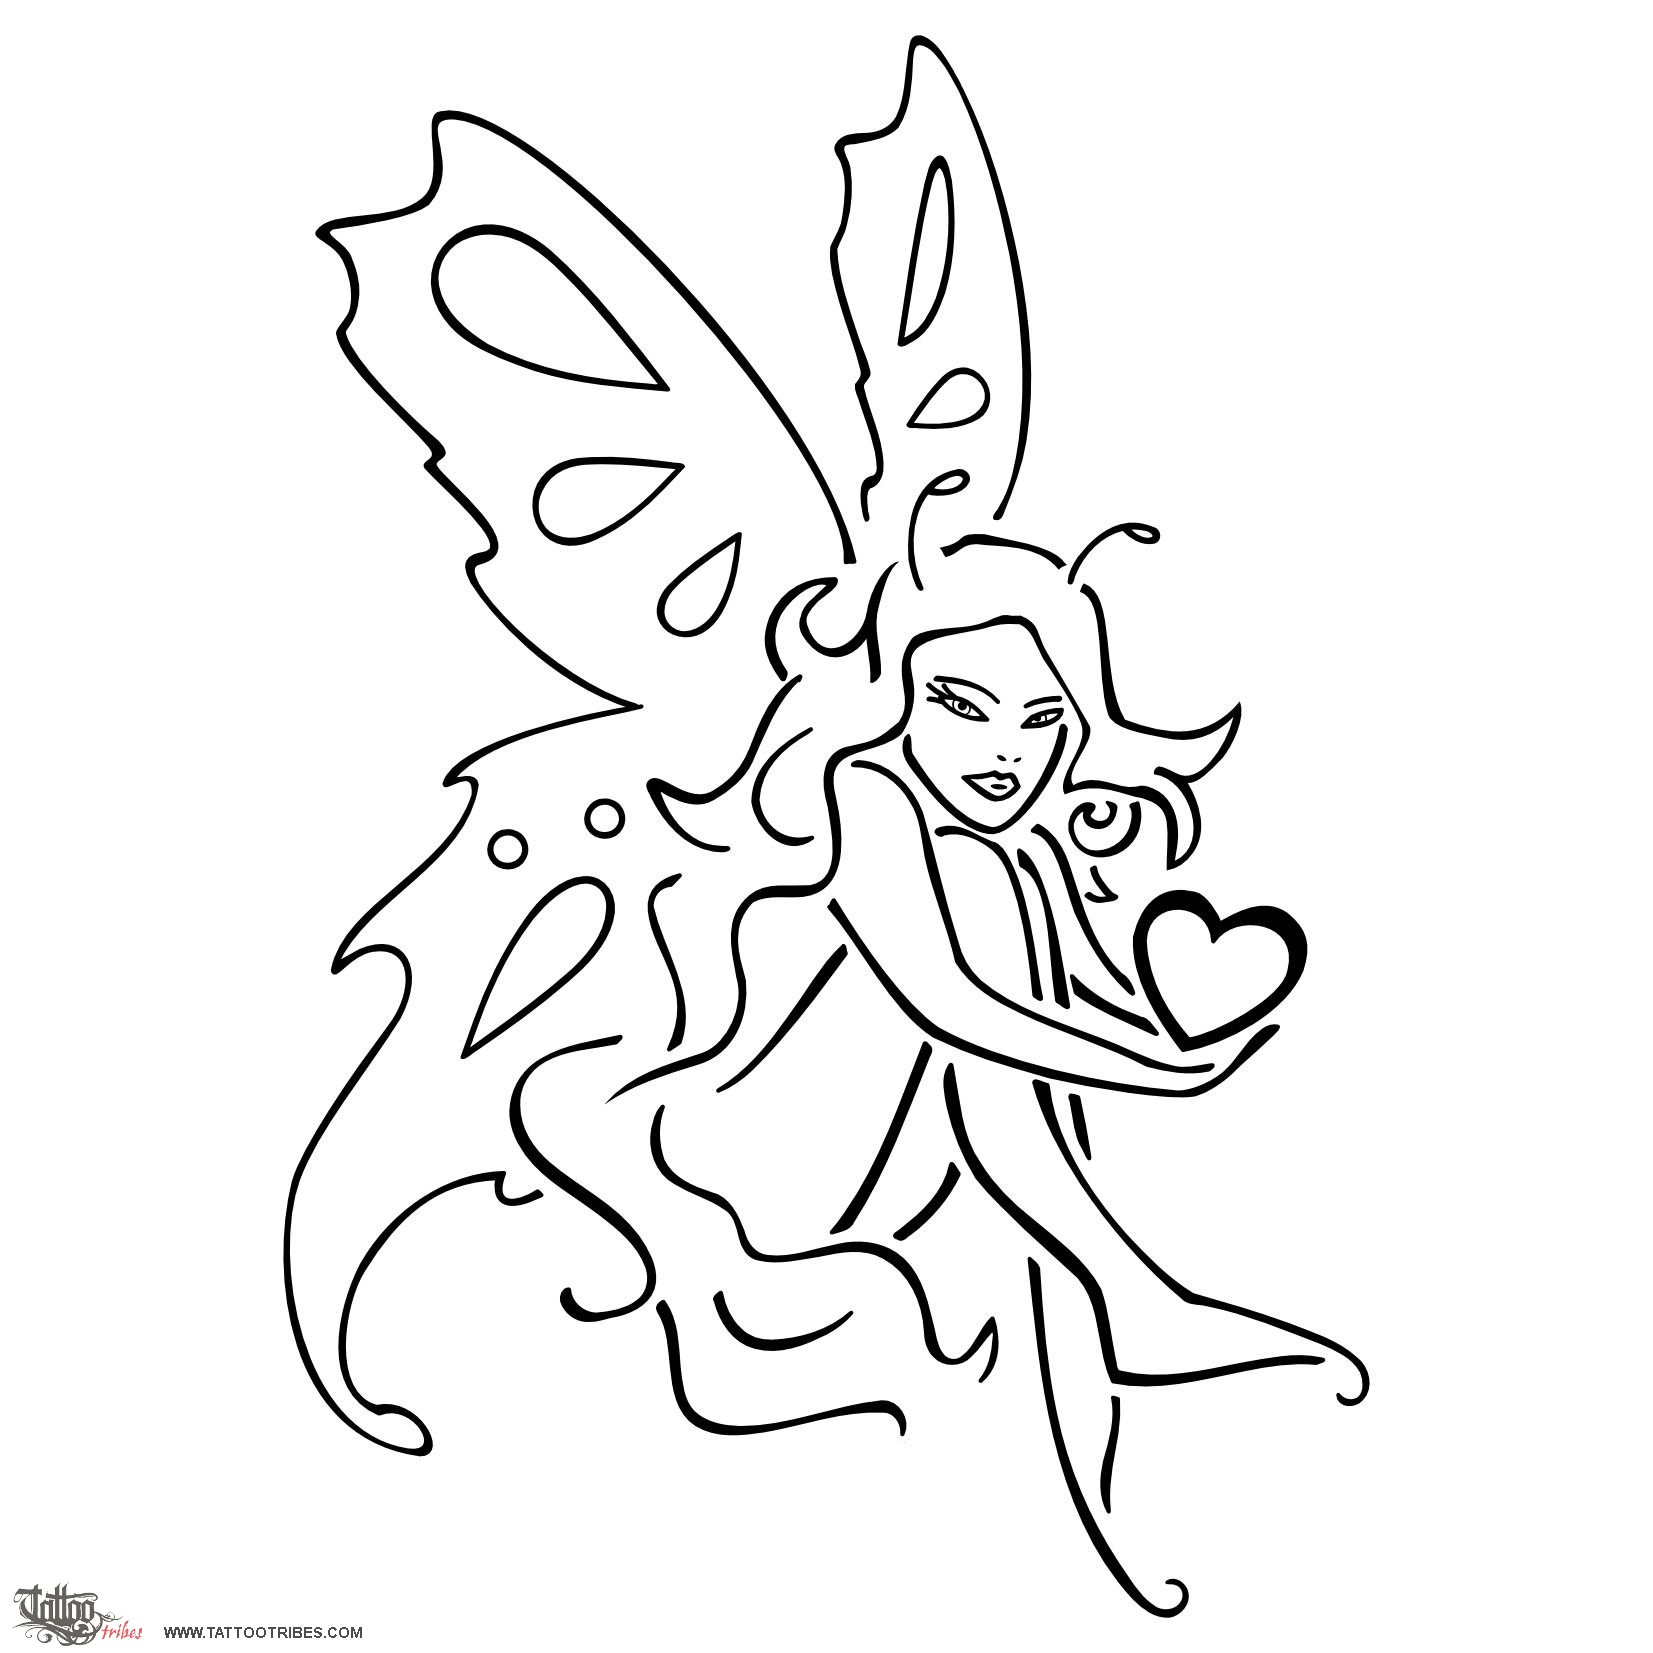 Tattoo Of Butterfly Fairy, Pure Love Tattoo